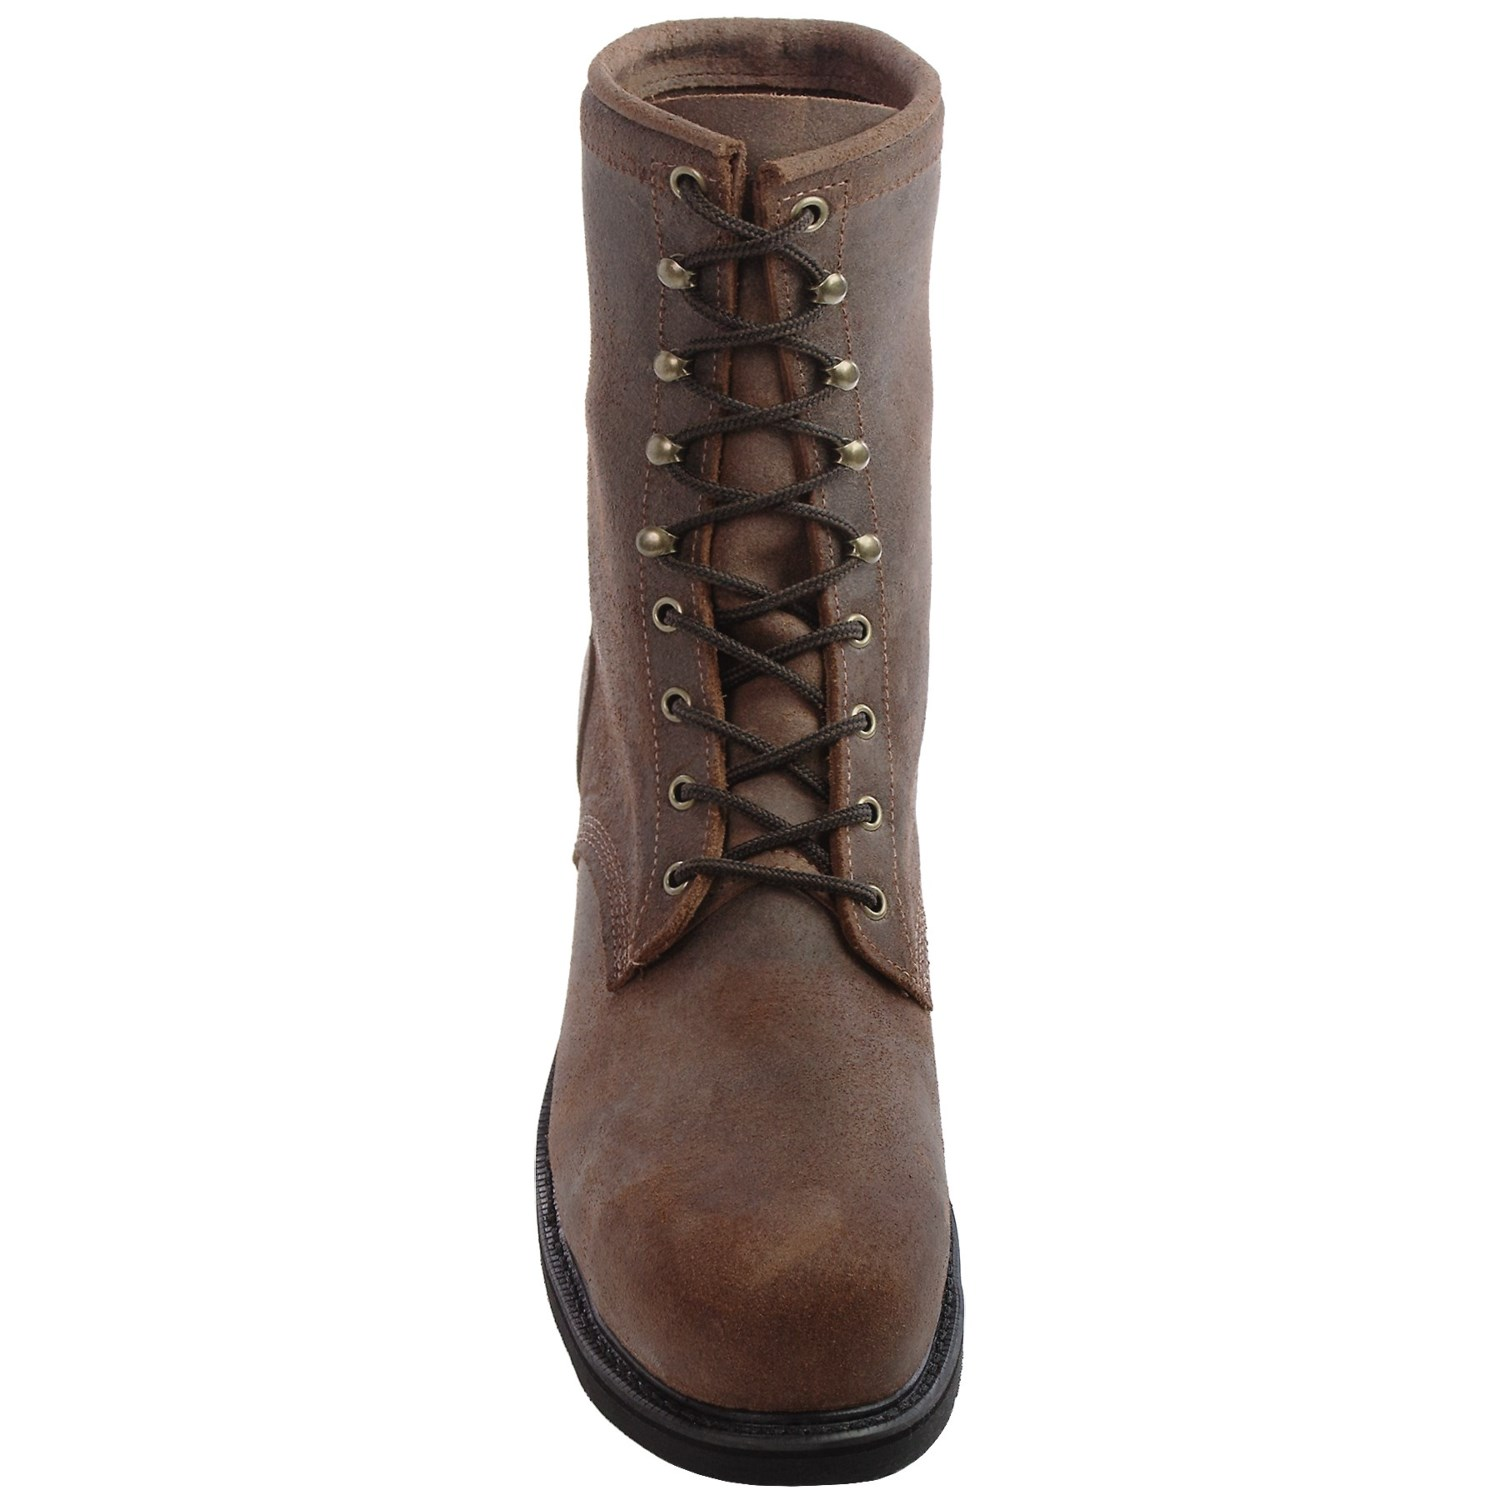 Justin leather work gloves - Justin Boots Dark Mountain Leather Work Boots Steel Toe For Men